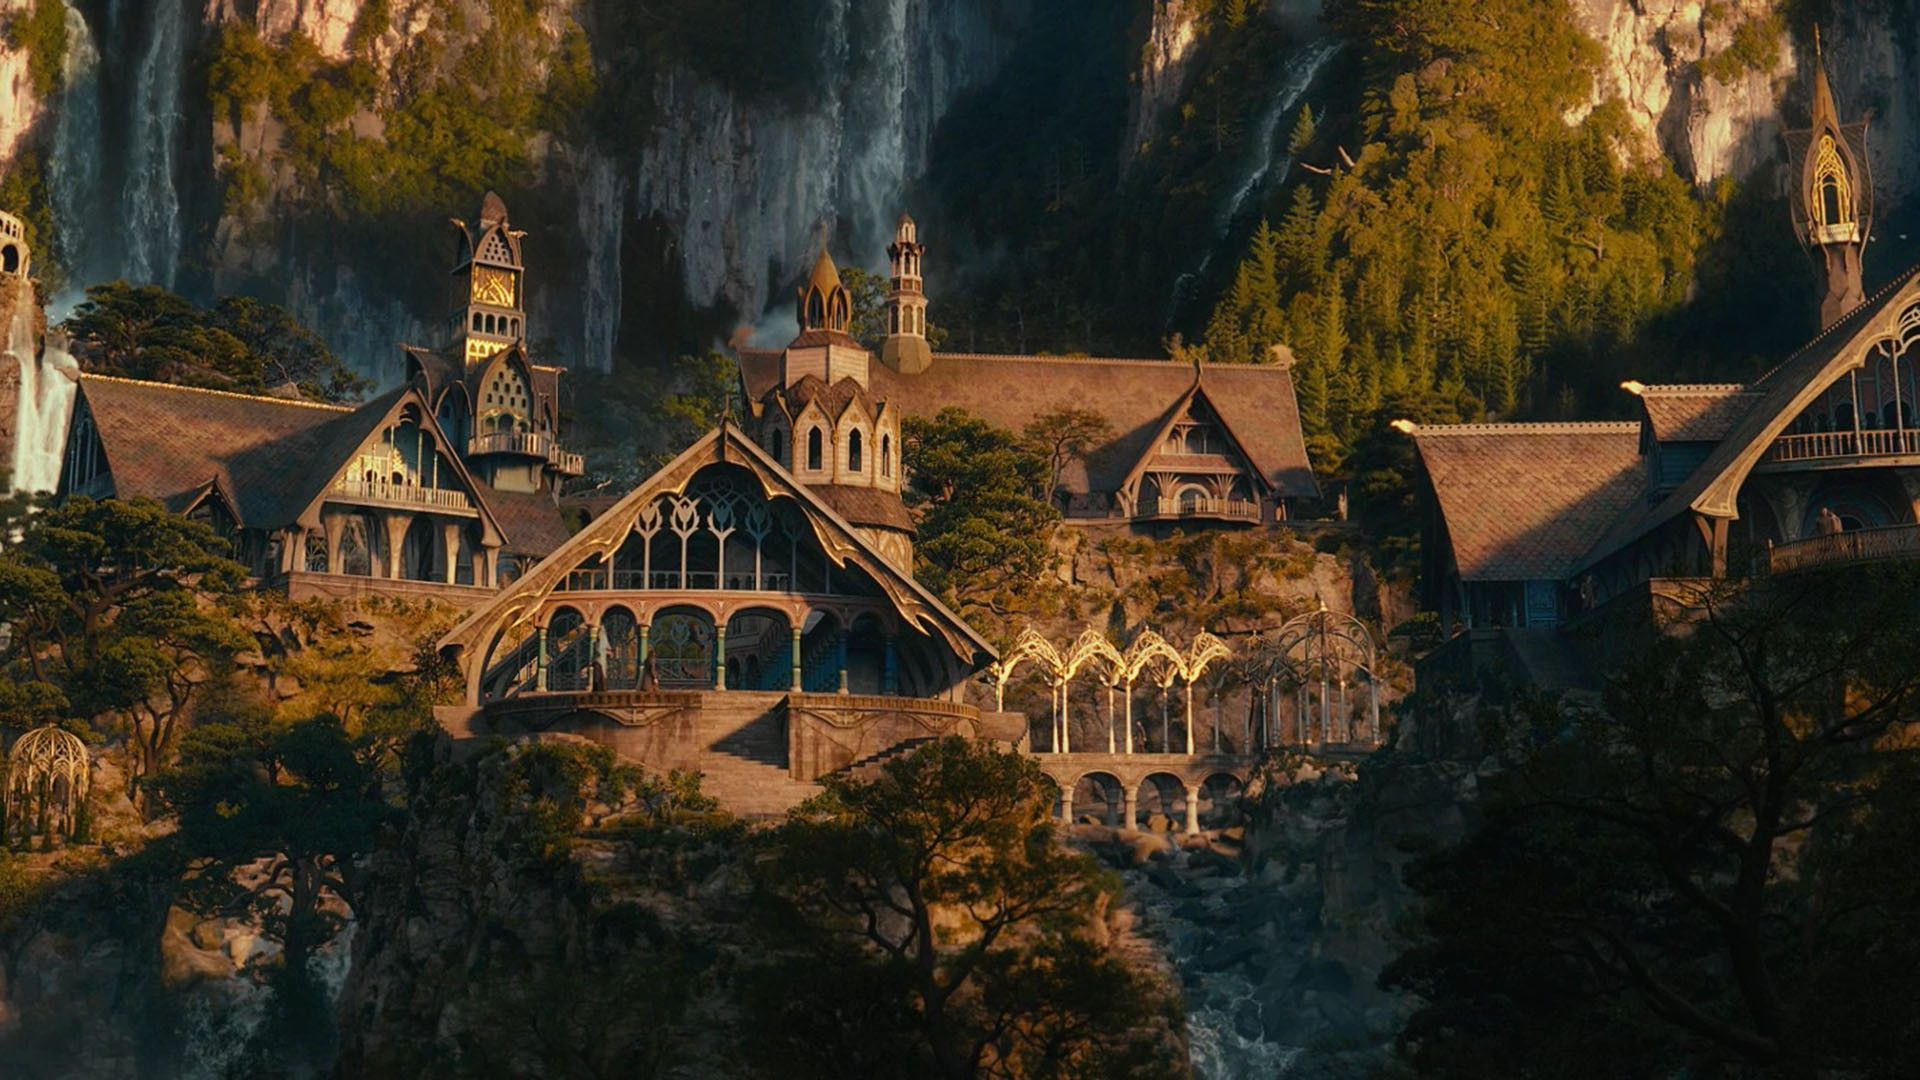 rivendell wallpaper - photo #16